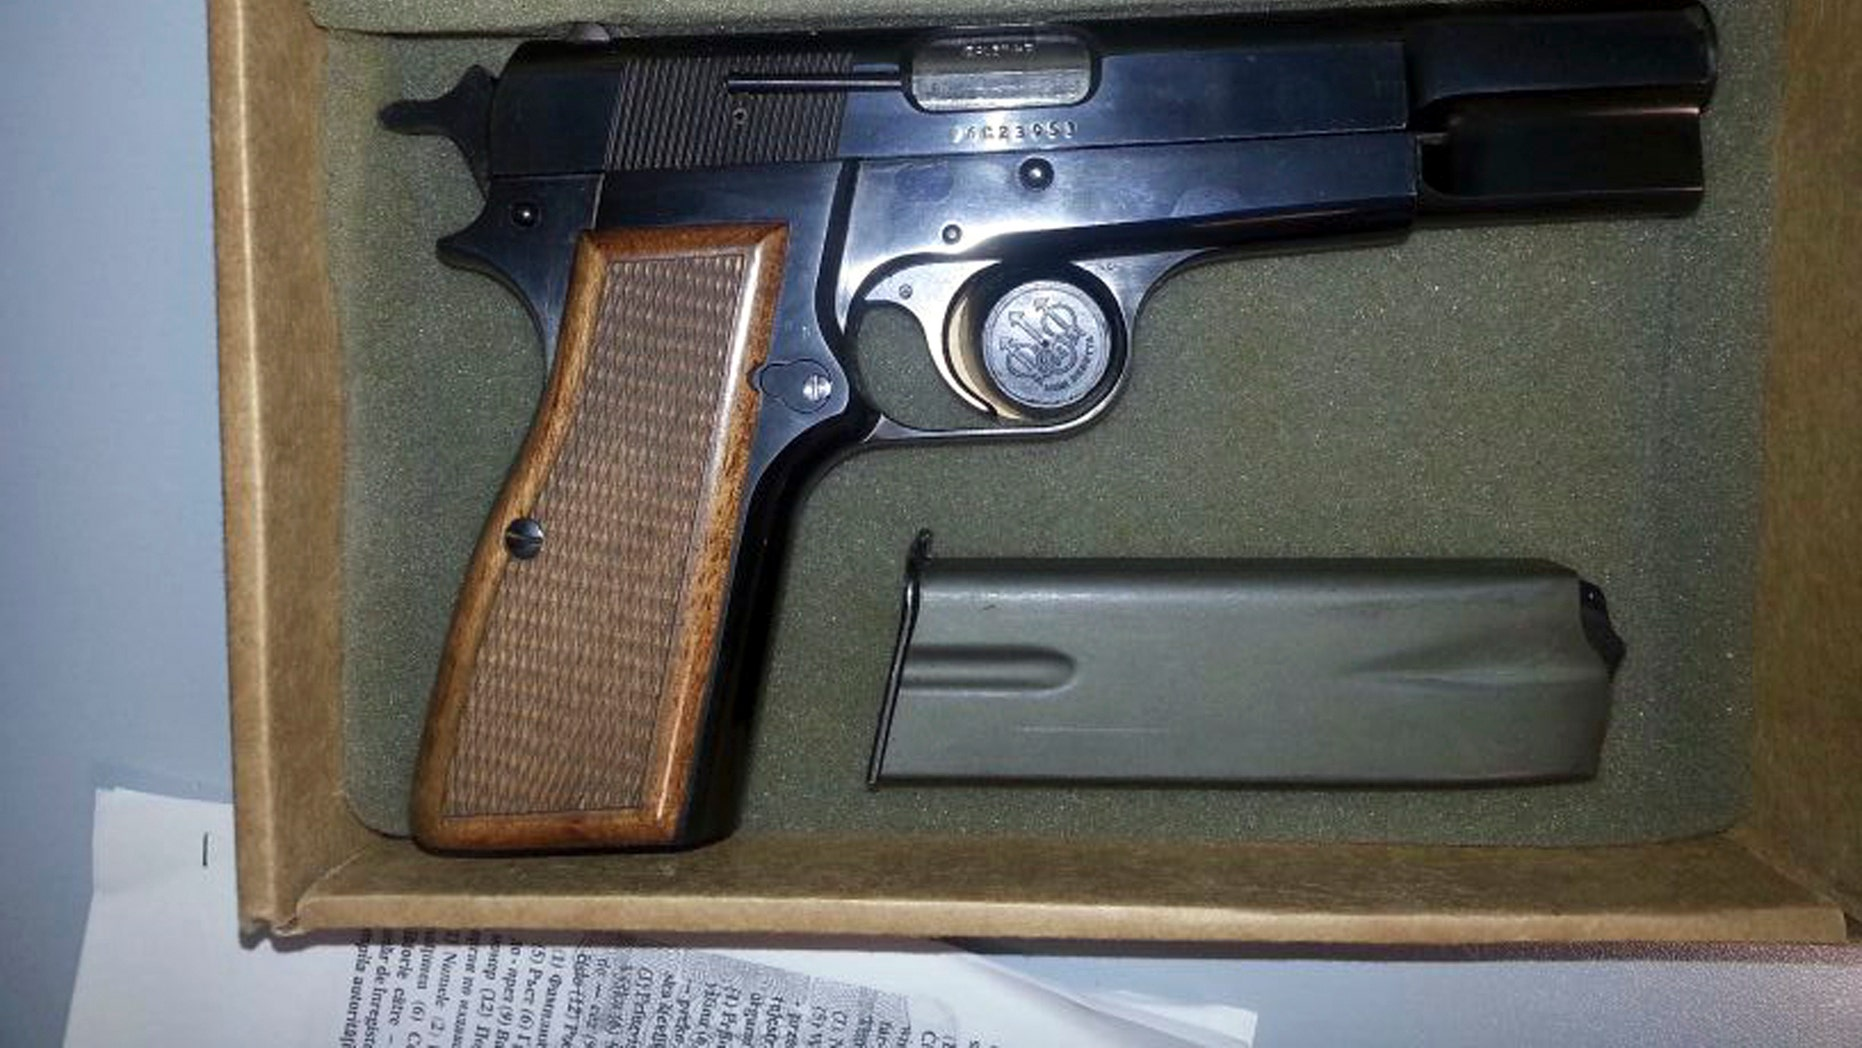 This photo provided by Alitalia shows the Browning HP 9mm handgun used to shoot Pope John Paul II in the abdomen in St. Peter's Square at the Vatican, on May 13, 1981.